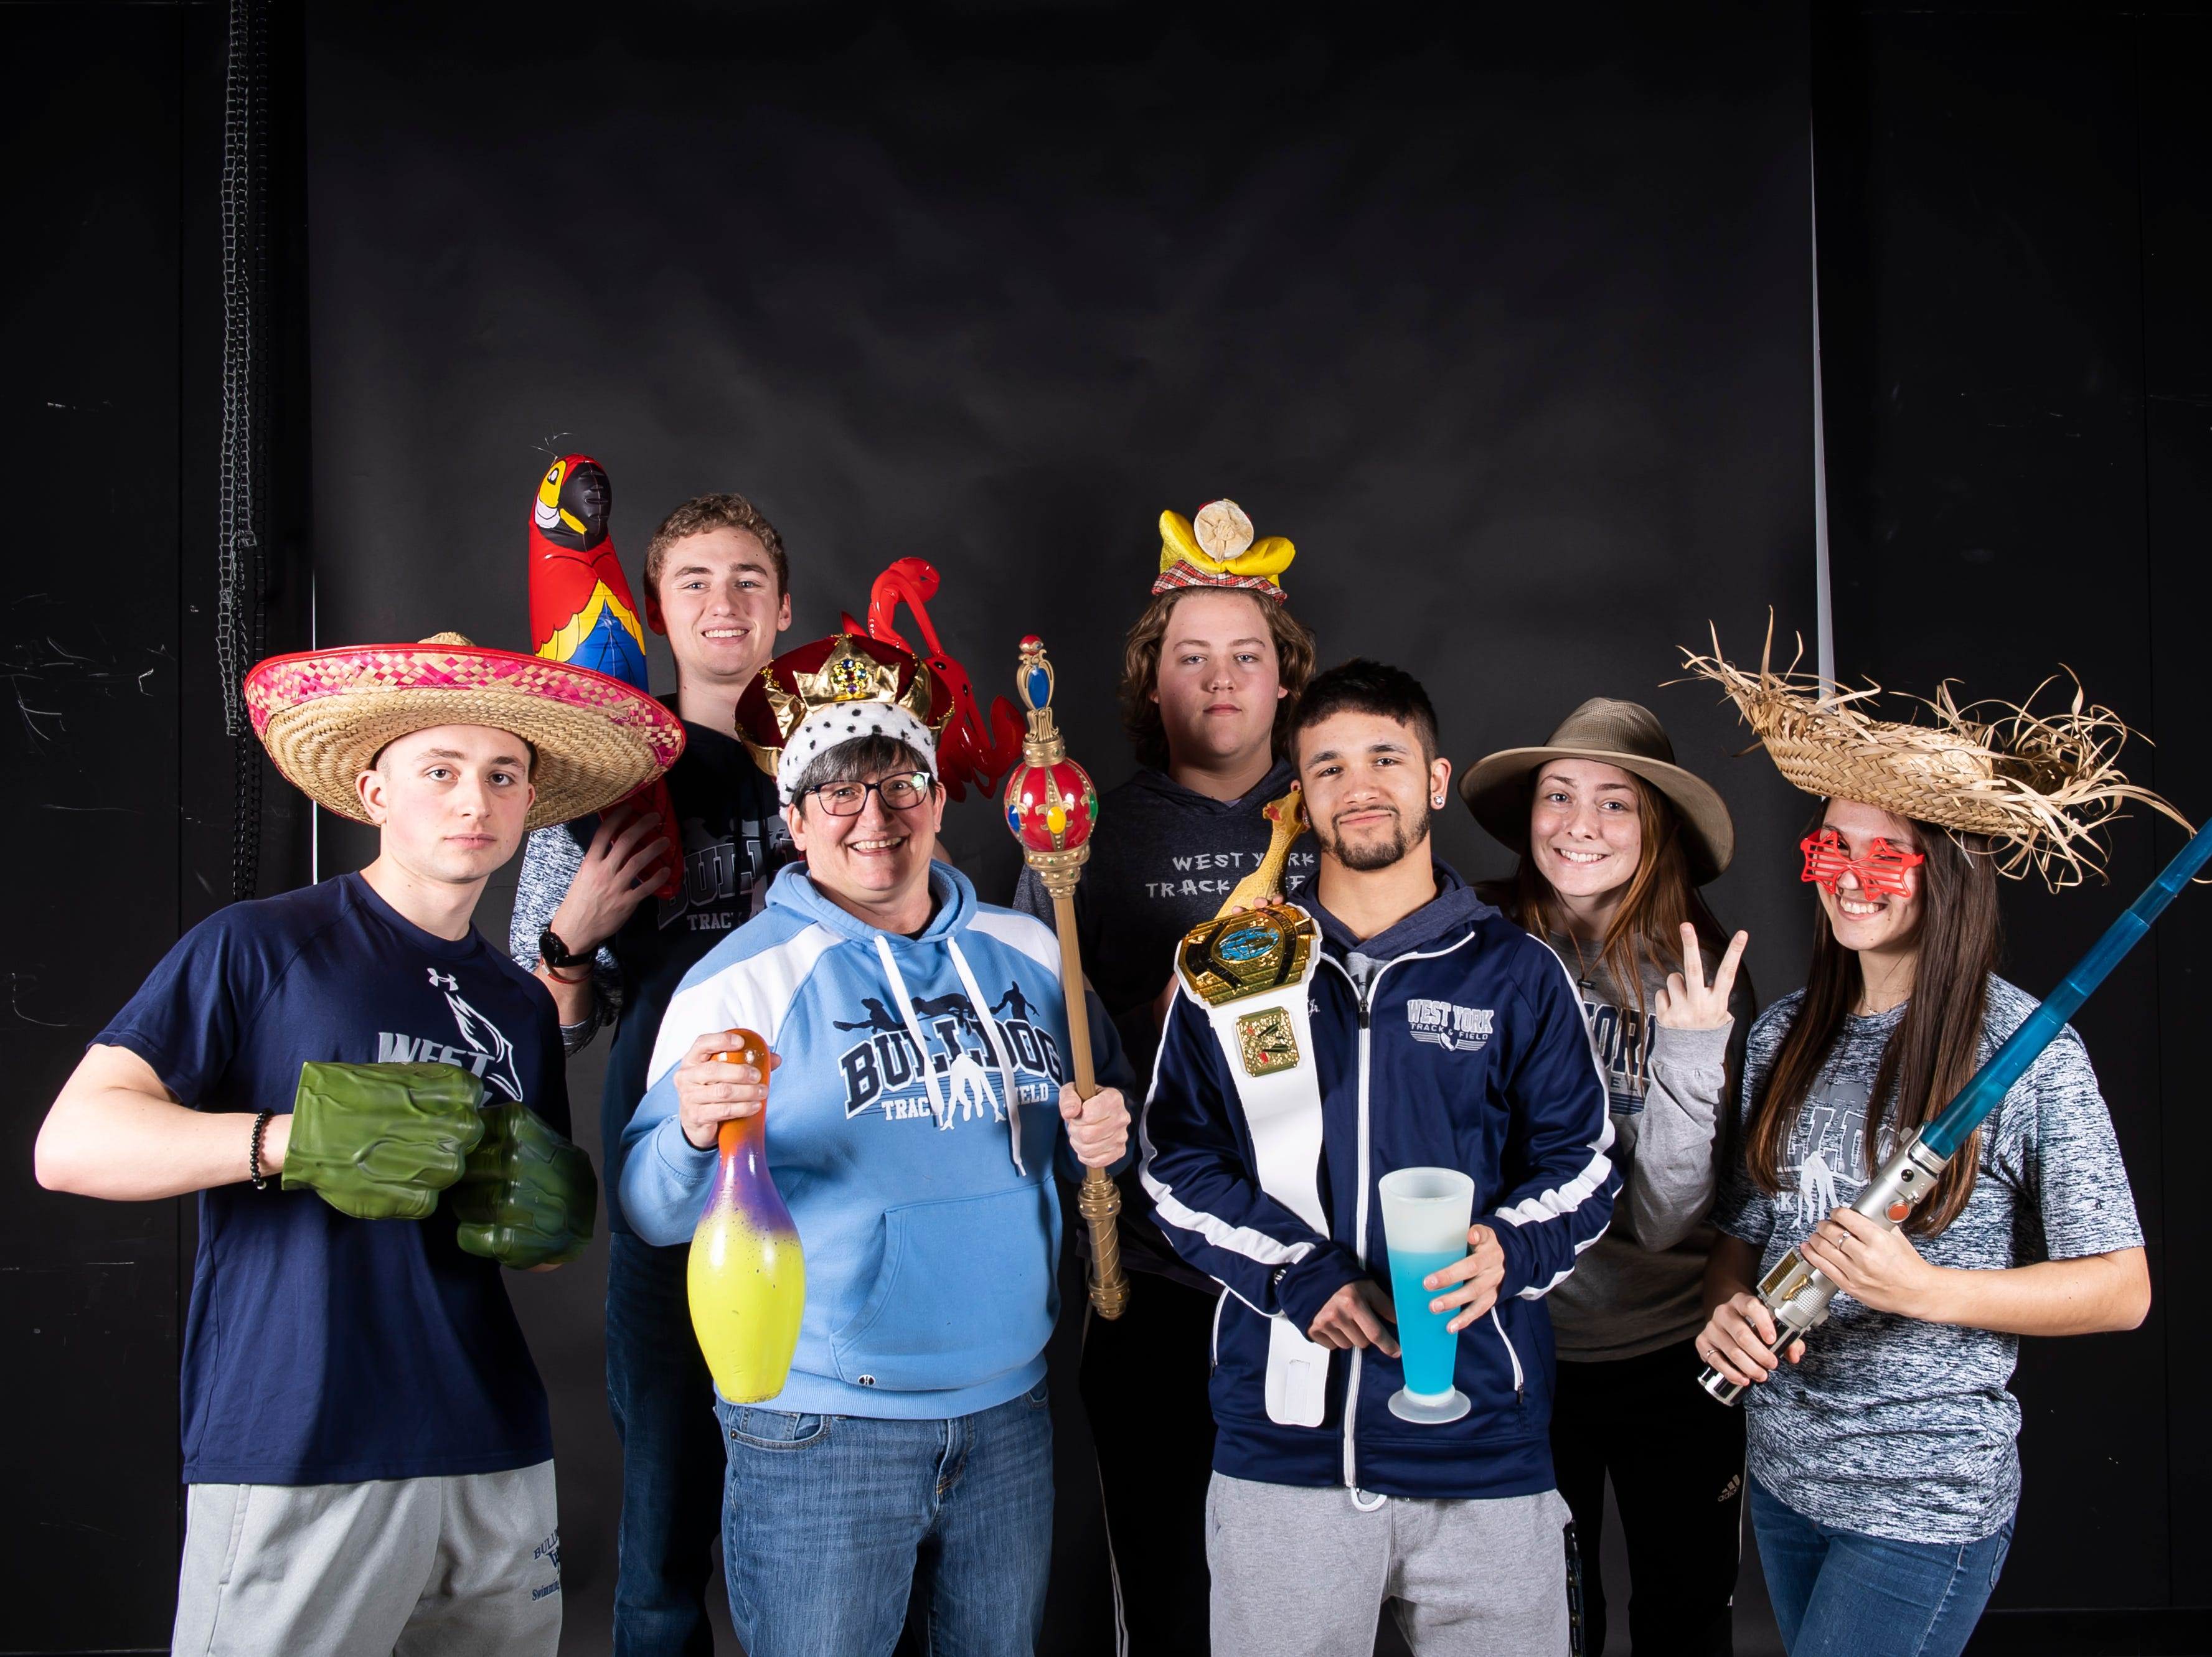 The West York track and field team strike a pose in the GameTimePA photo booth during spring sports media day in York Sunday, March 10, 2019.